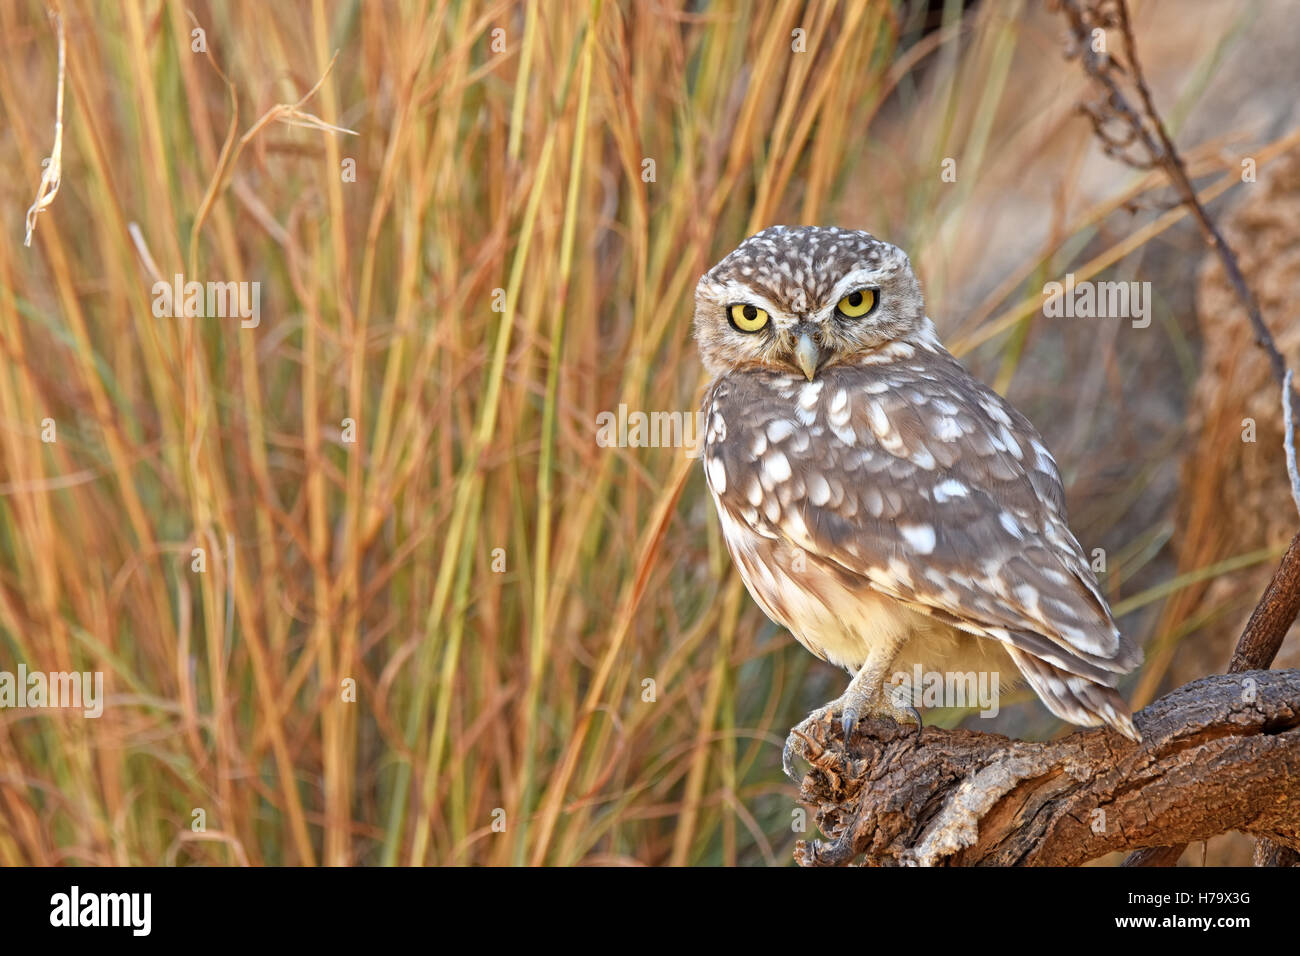 Peu d'owl perching on rock Photo Stock